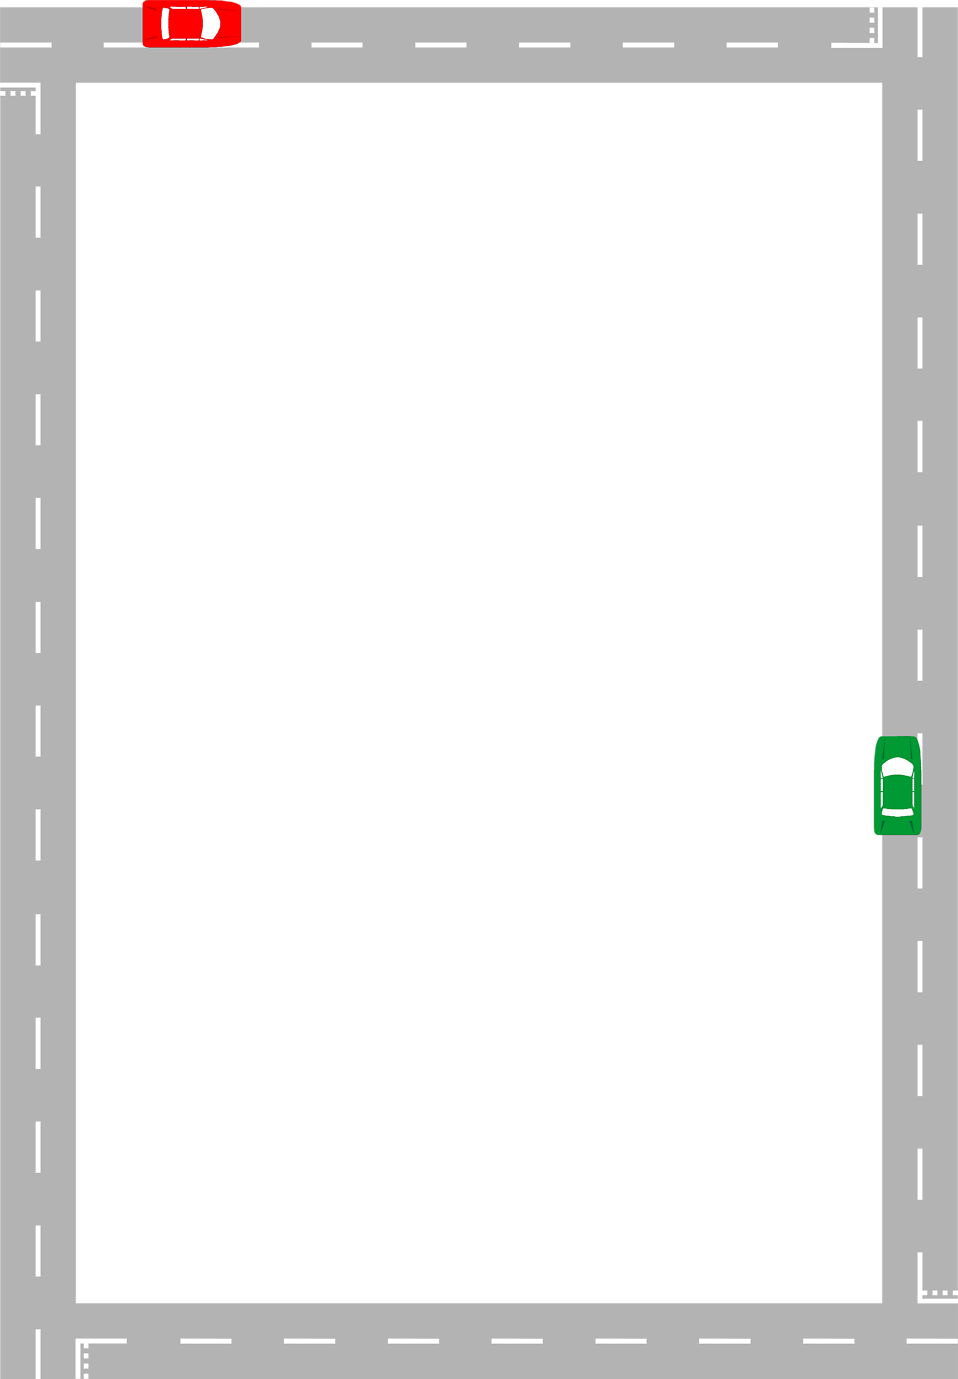 Empty highway clipart black and white png transparent download Road   Free Stock Photo   Illustration of a blank frame border of a ... png transparent download